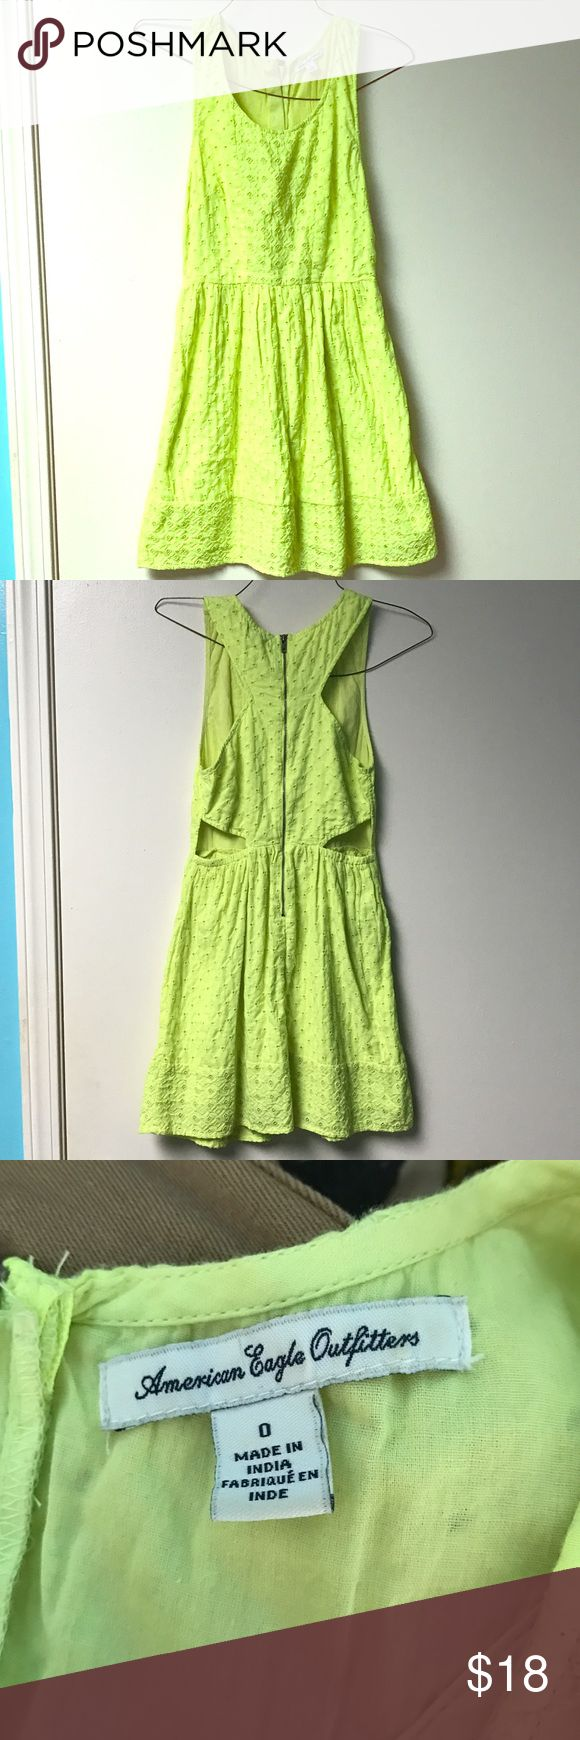 Neon yellow summer/spring dress This dress does have two cut outs on the back/side. It is a super cute causal dress. It is a bright yellow dress like neon. American Eagle Outfitters Dresses Midi